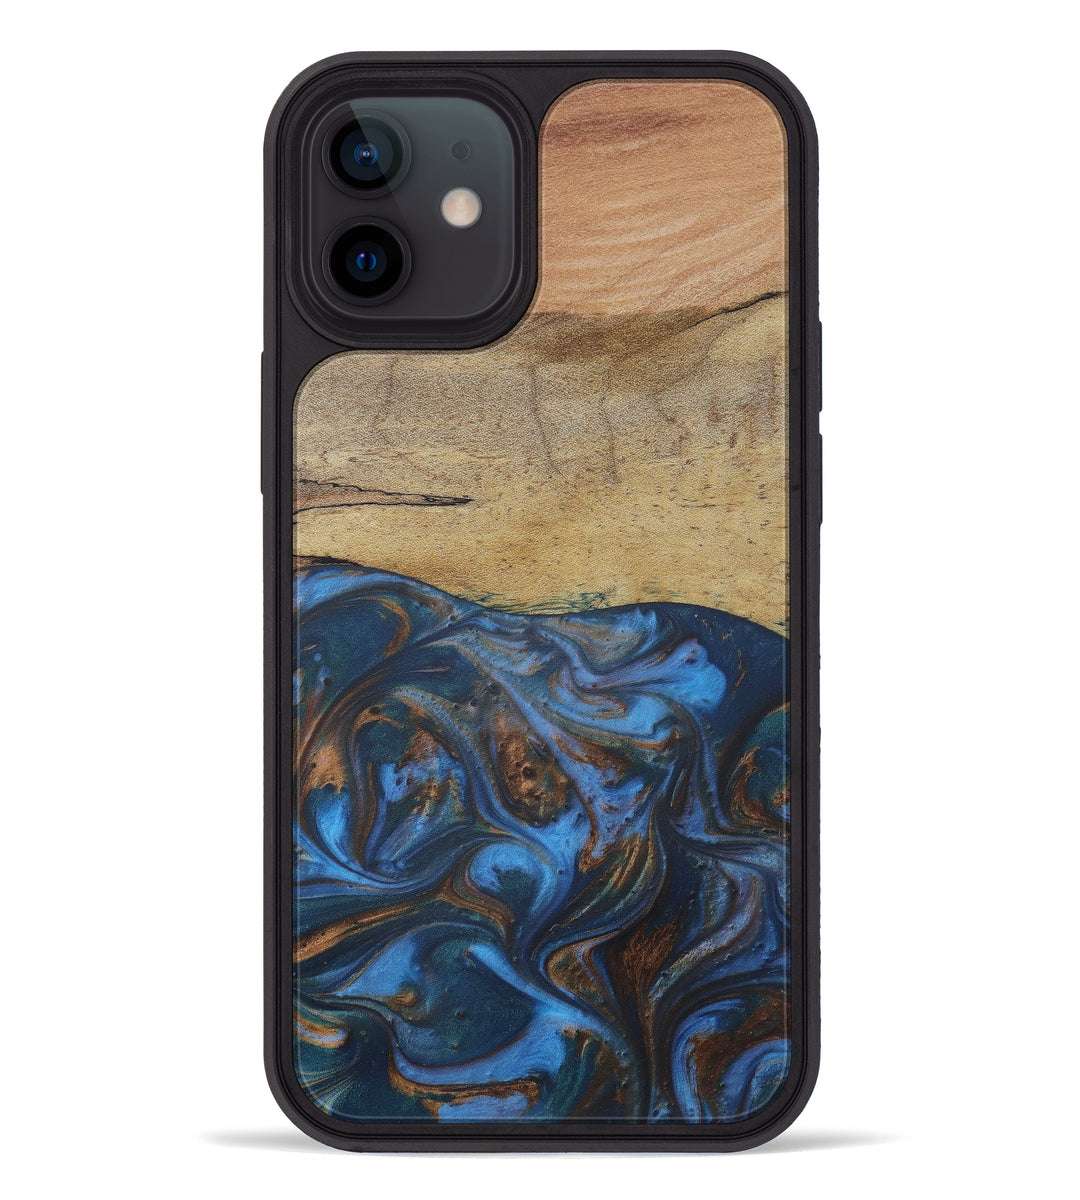 iPhone 12 Wood+Resin Phone Case - Rois (Teal & Gold, 411057)